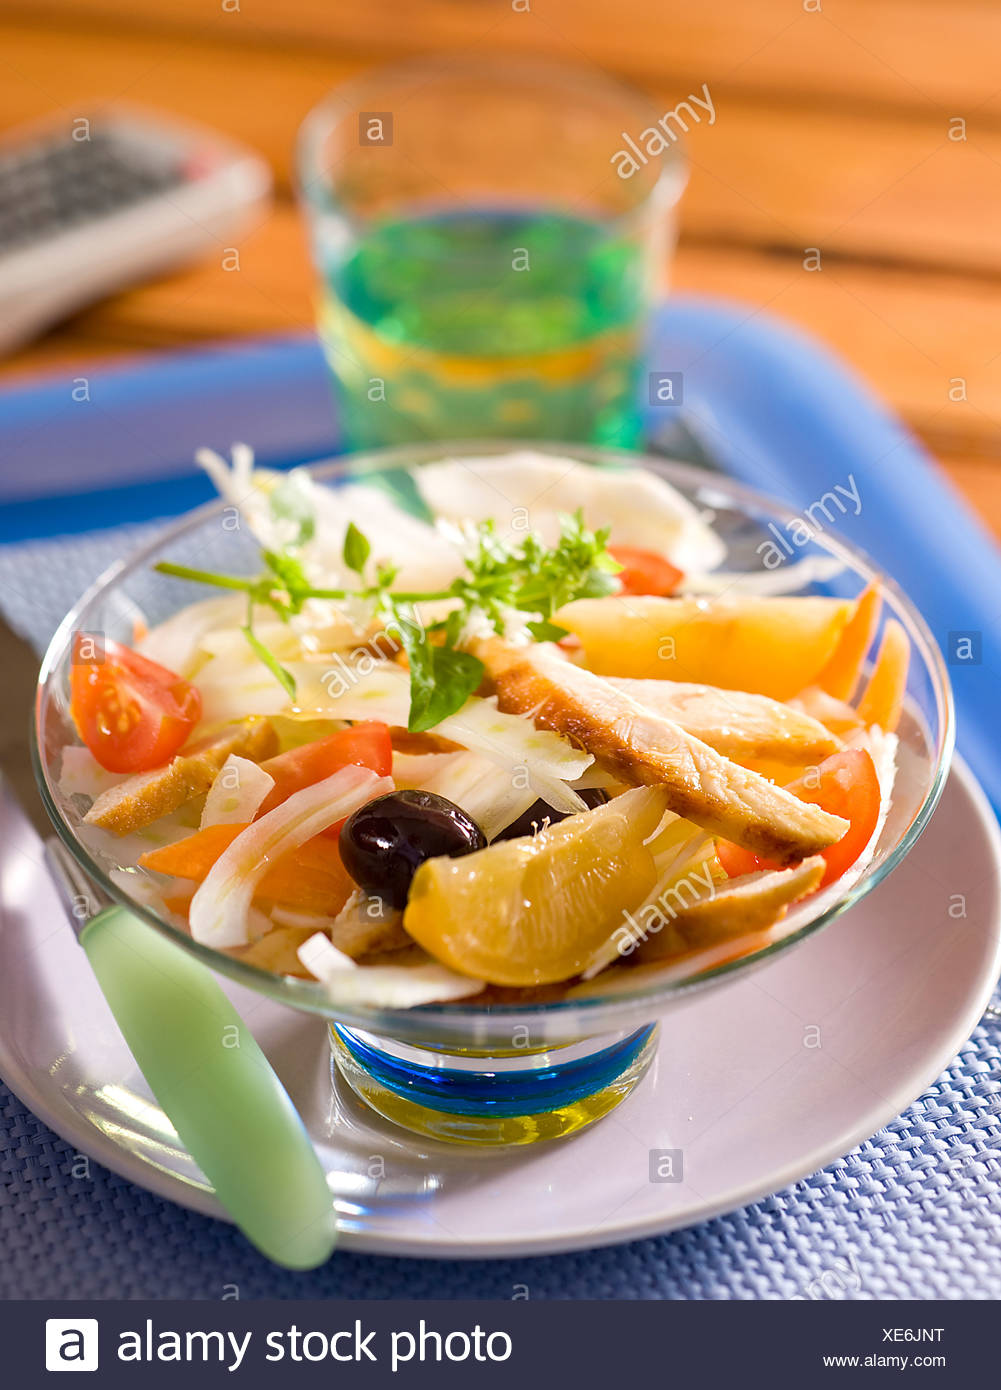 Chicken Salad with Candied Lemon - Stock Image